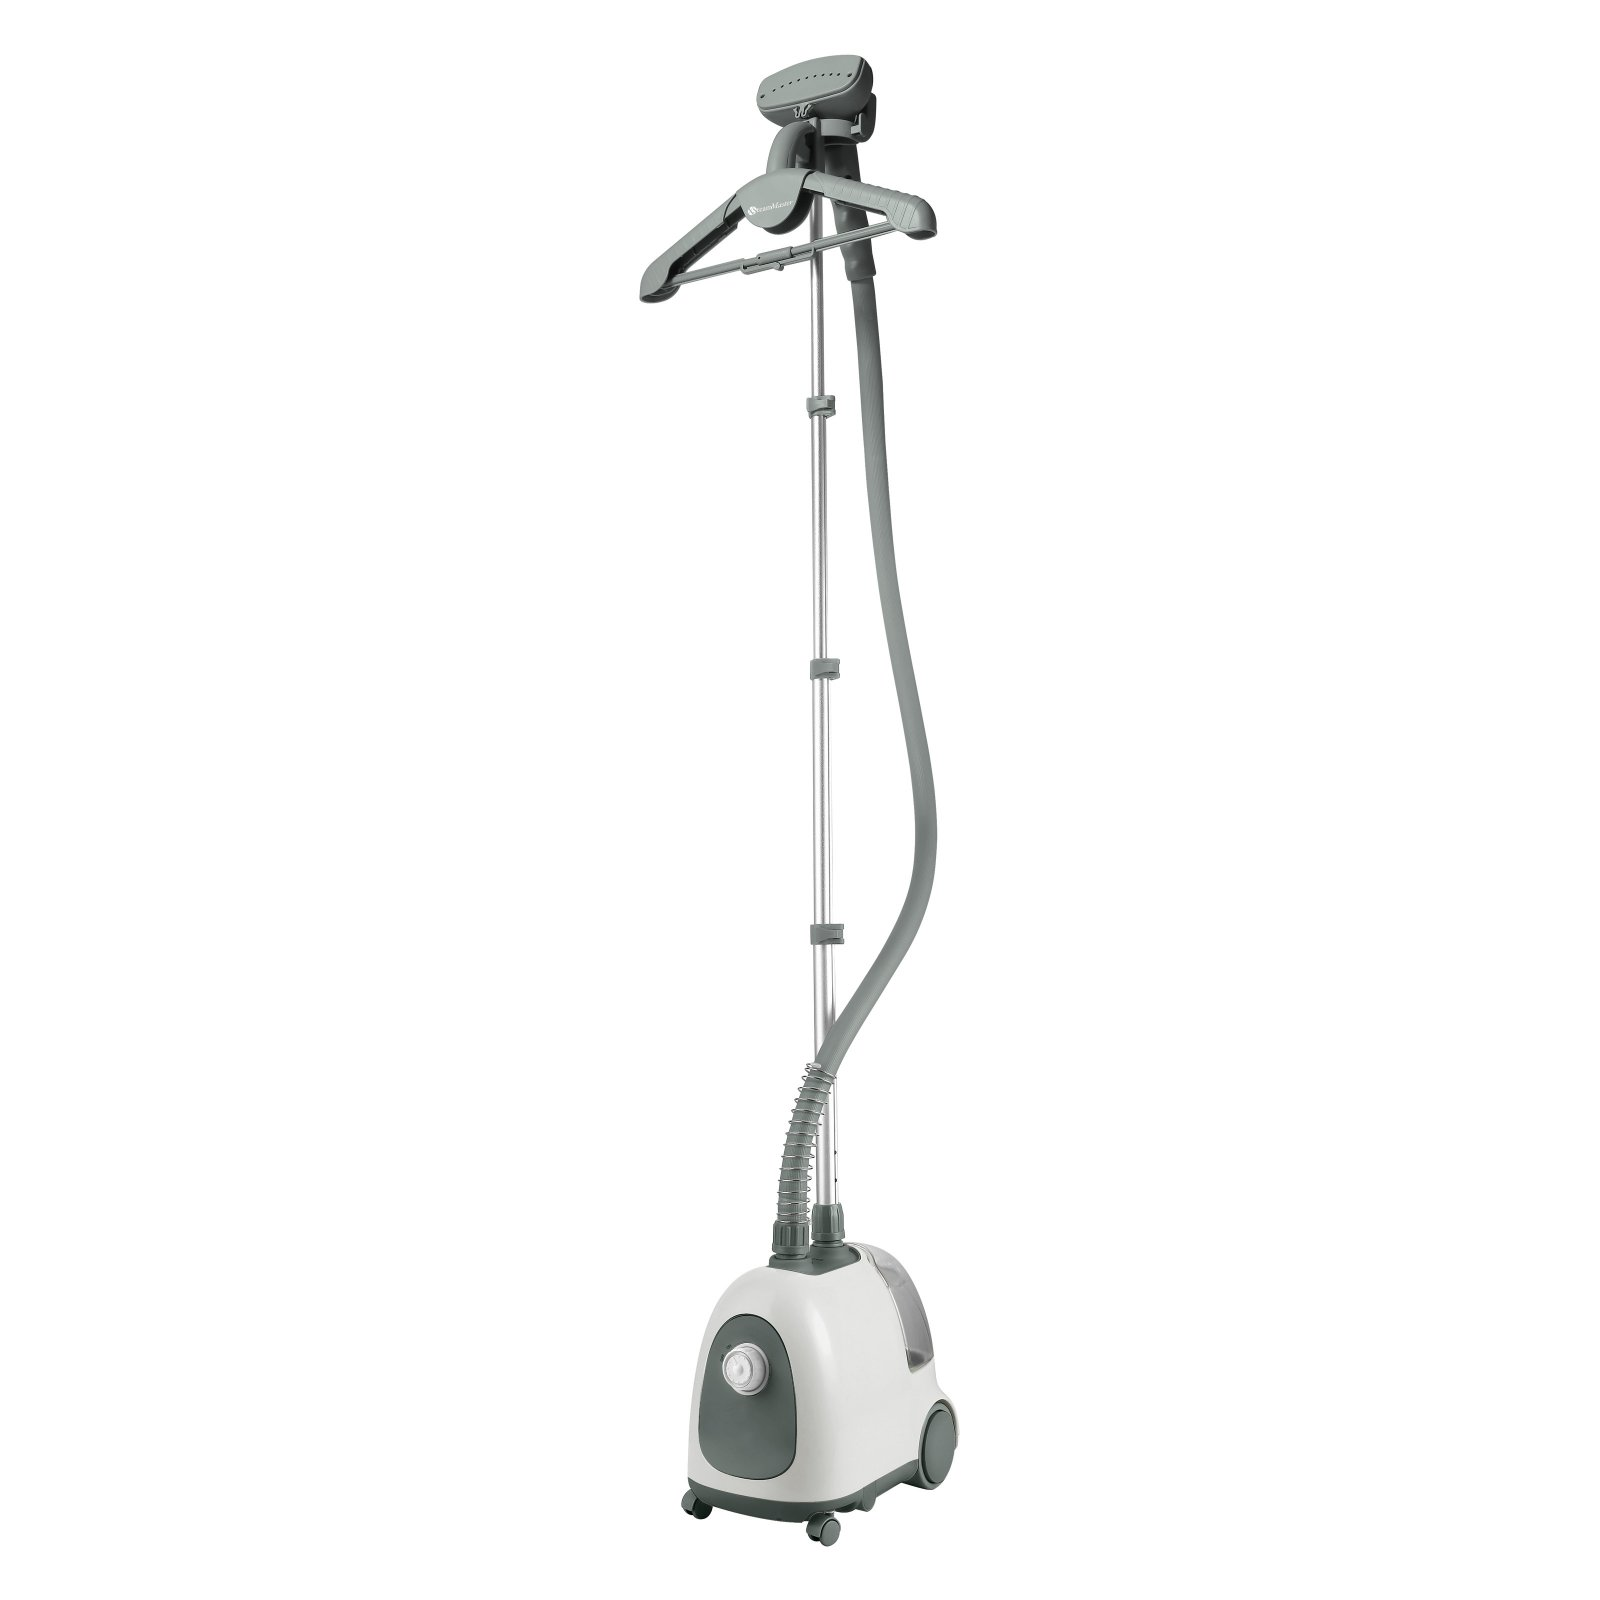 Steam and Go - Professional garment steamer for in home use with accessories included! SAG-12 White